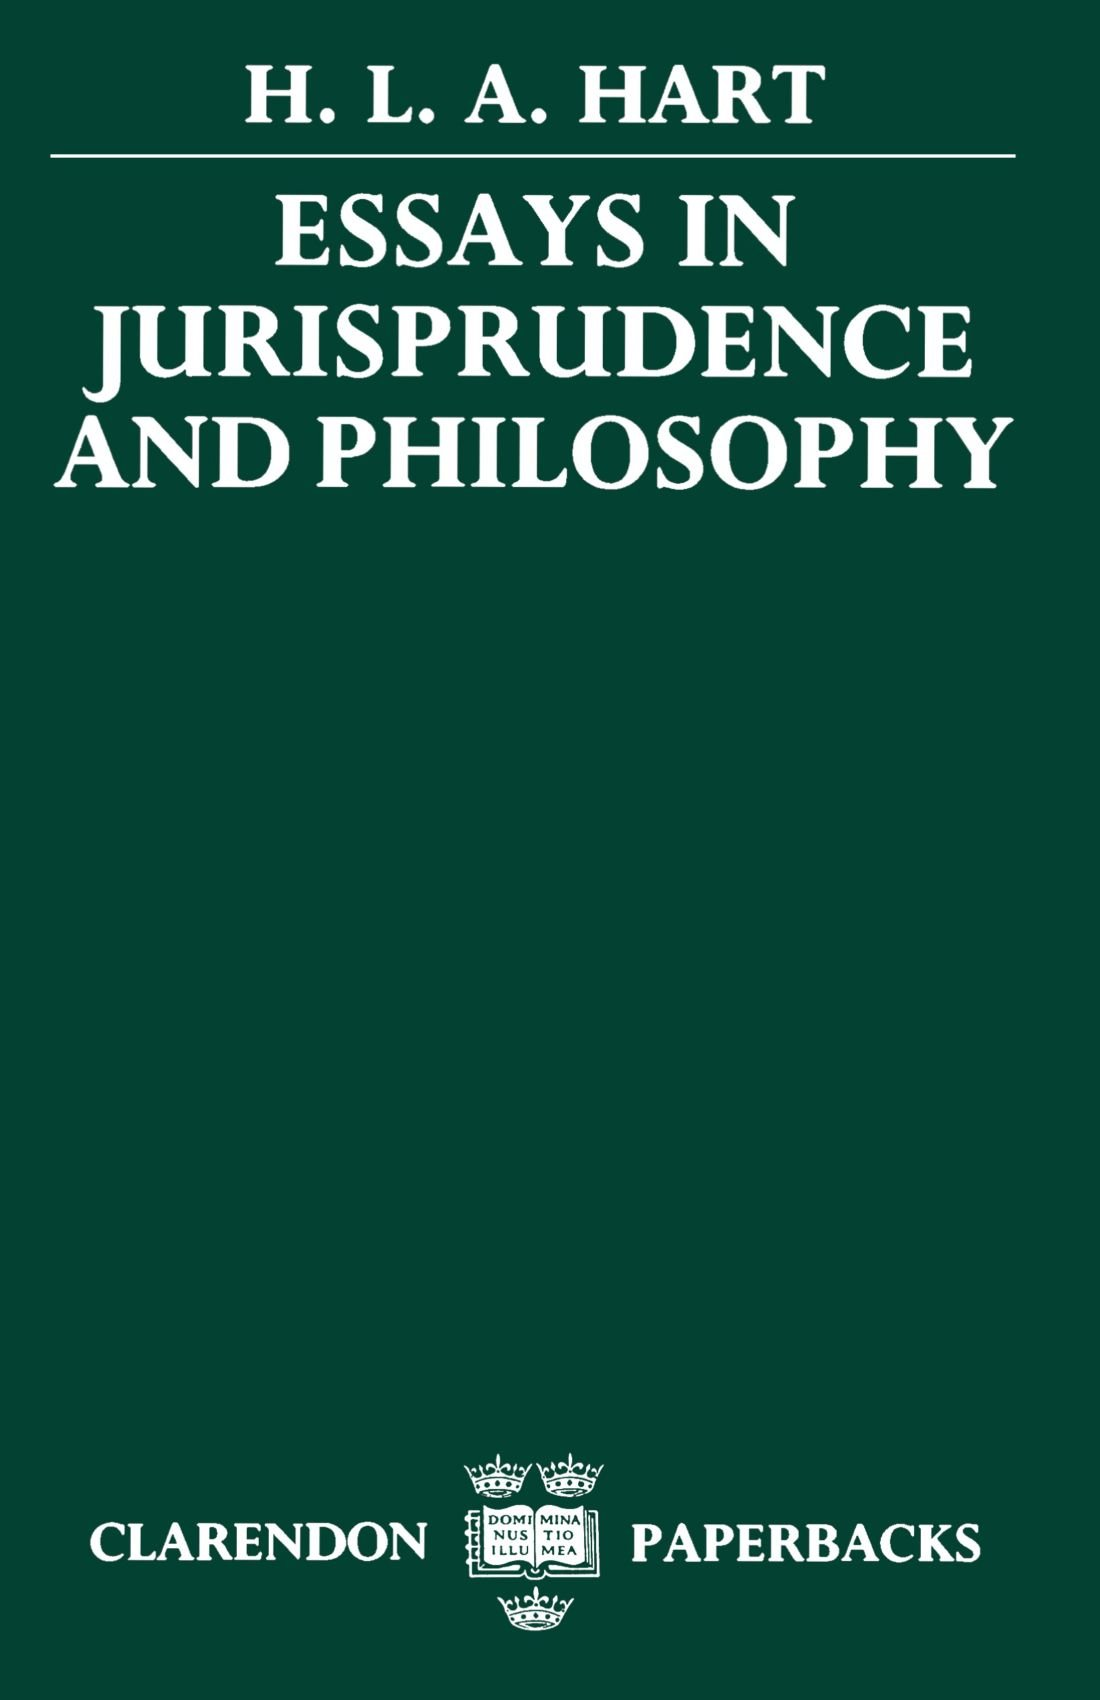 essays in jurisprudence and philosophy amazon co uk h l a essays in jurisprudence and philosophy amazon co uk h l a hart 9780198253884 books